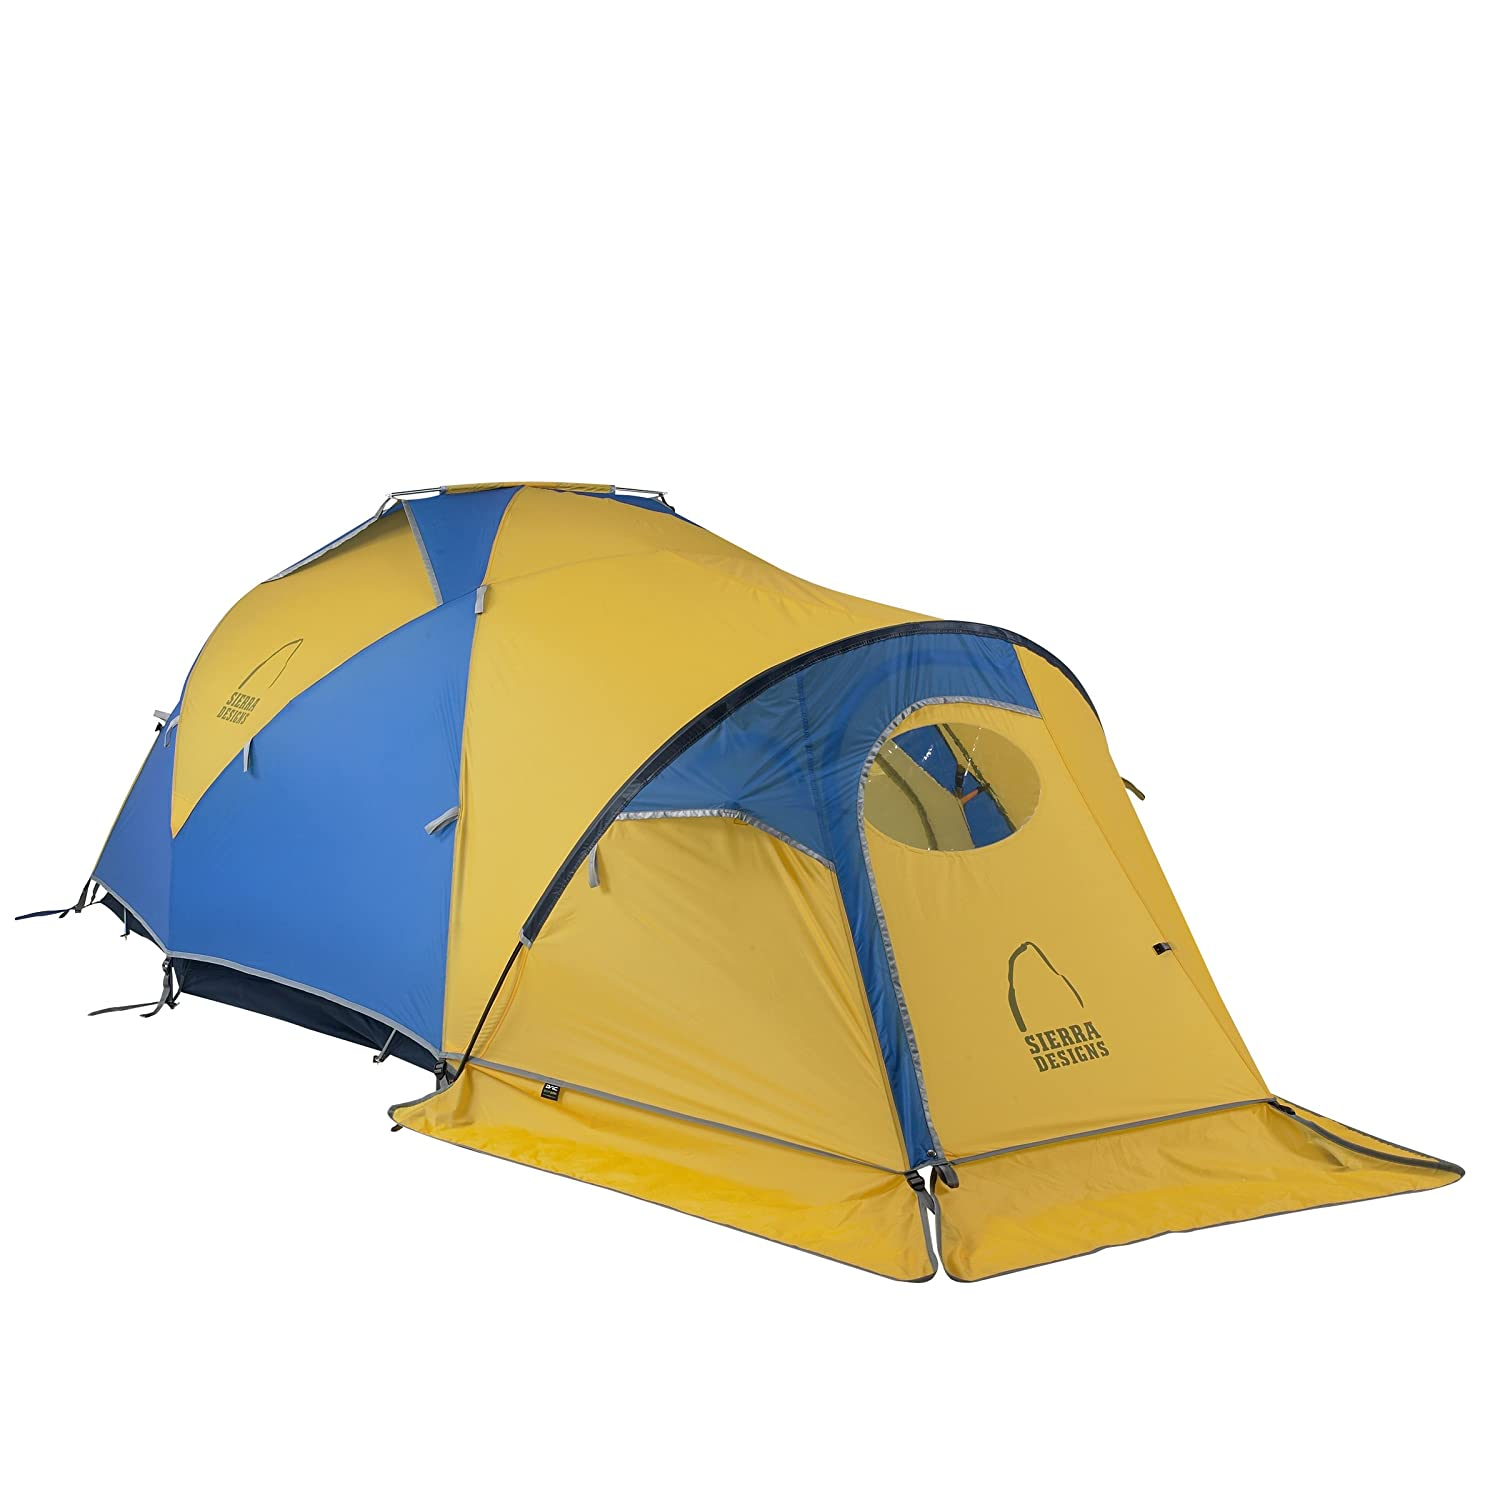 Amazon.com  Sierra Designs Mountain Meteor 3-Person Tent  Backpacking Tents  Sports u0026 Outdoors  sc 1 st  Amazon.com & Amazon.com : Sierra Designs Mountain Meteor 3-Person Tent ...